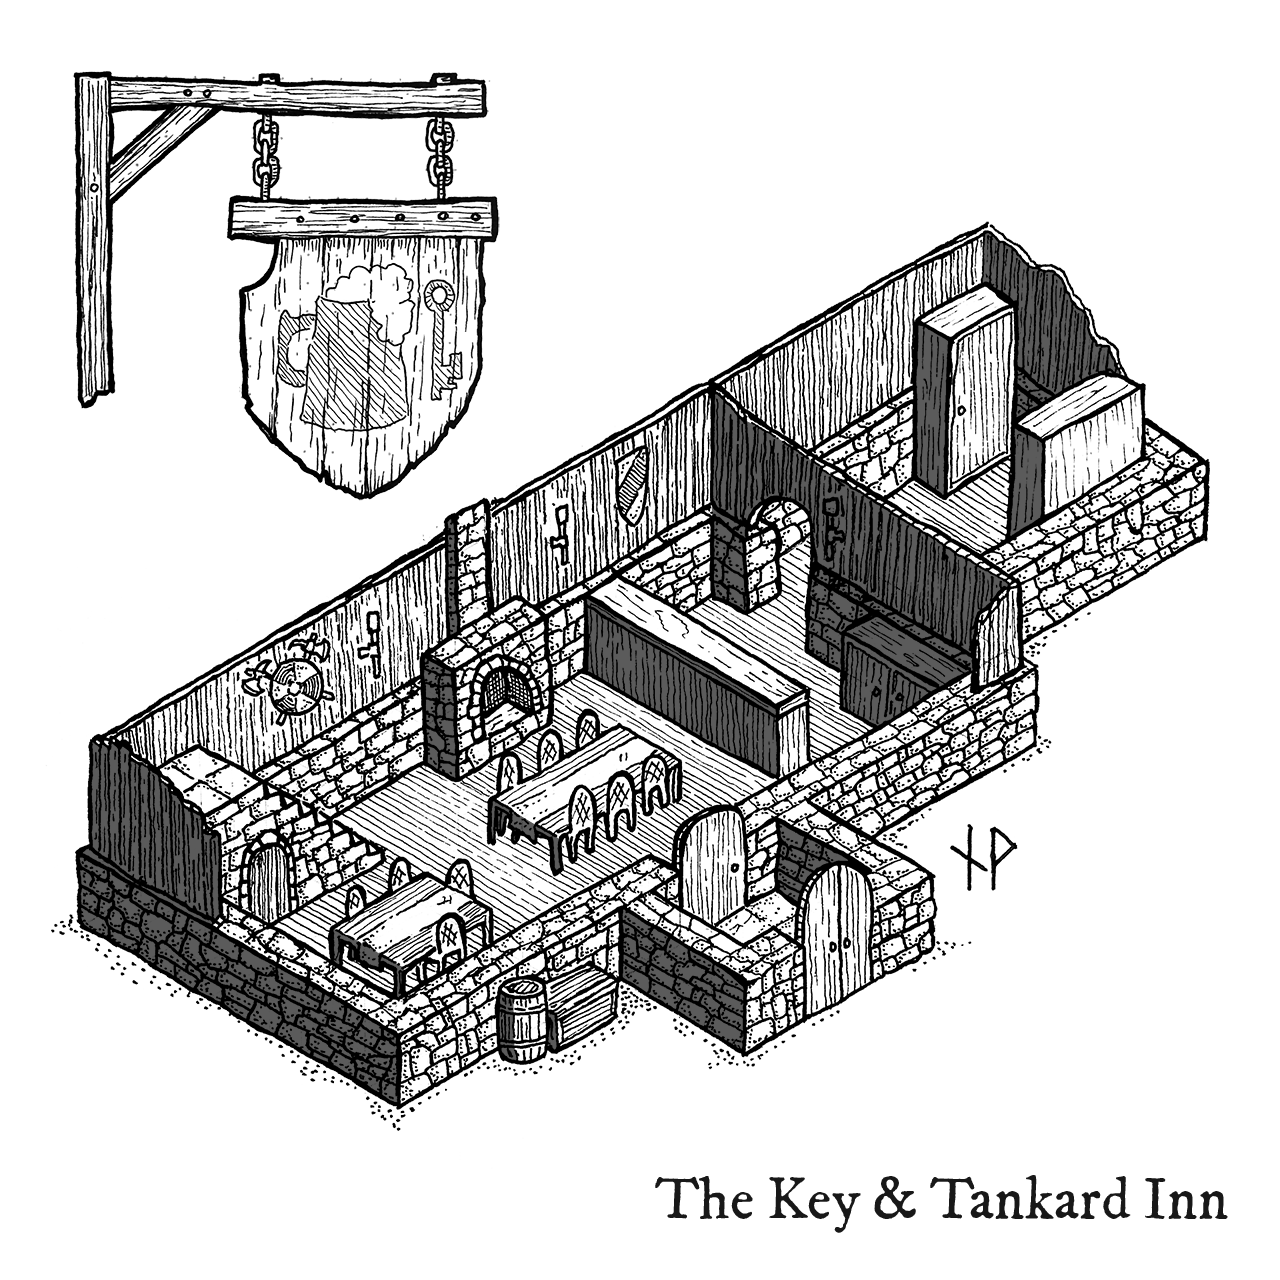 Map of the Key & Tankard Inn